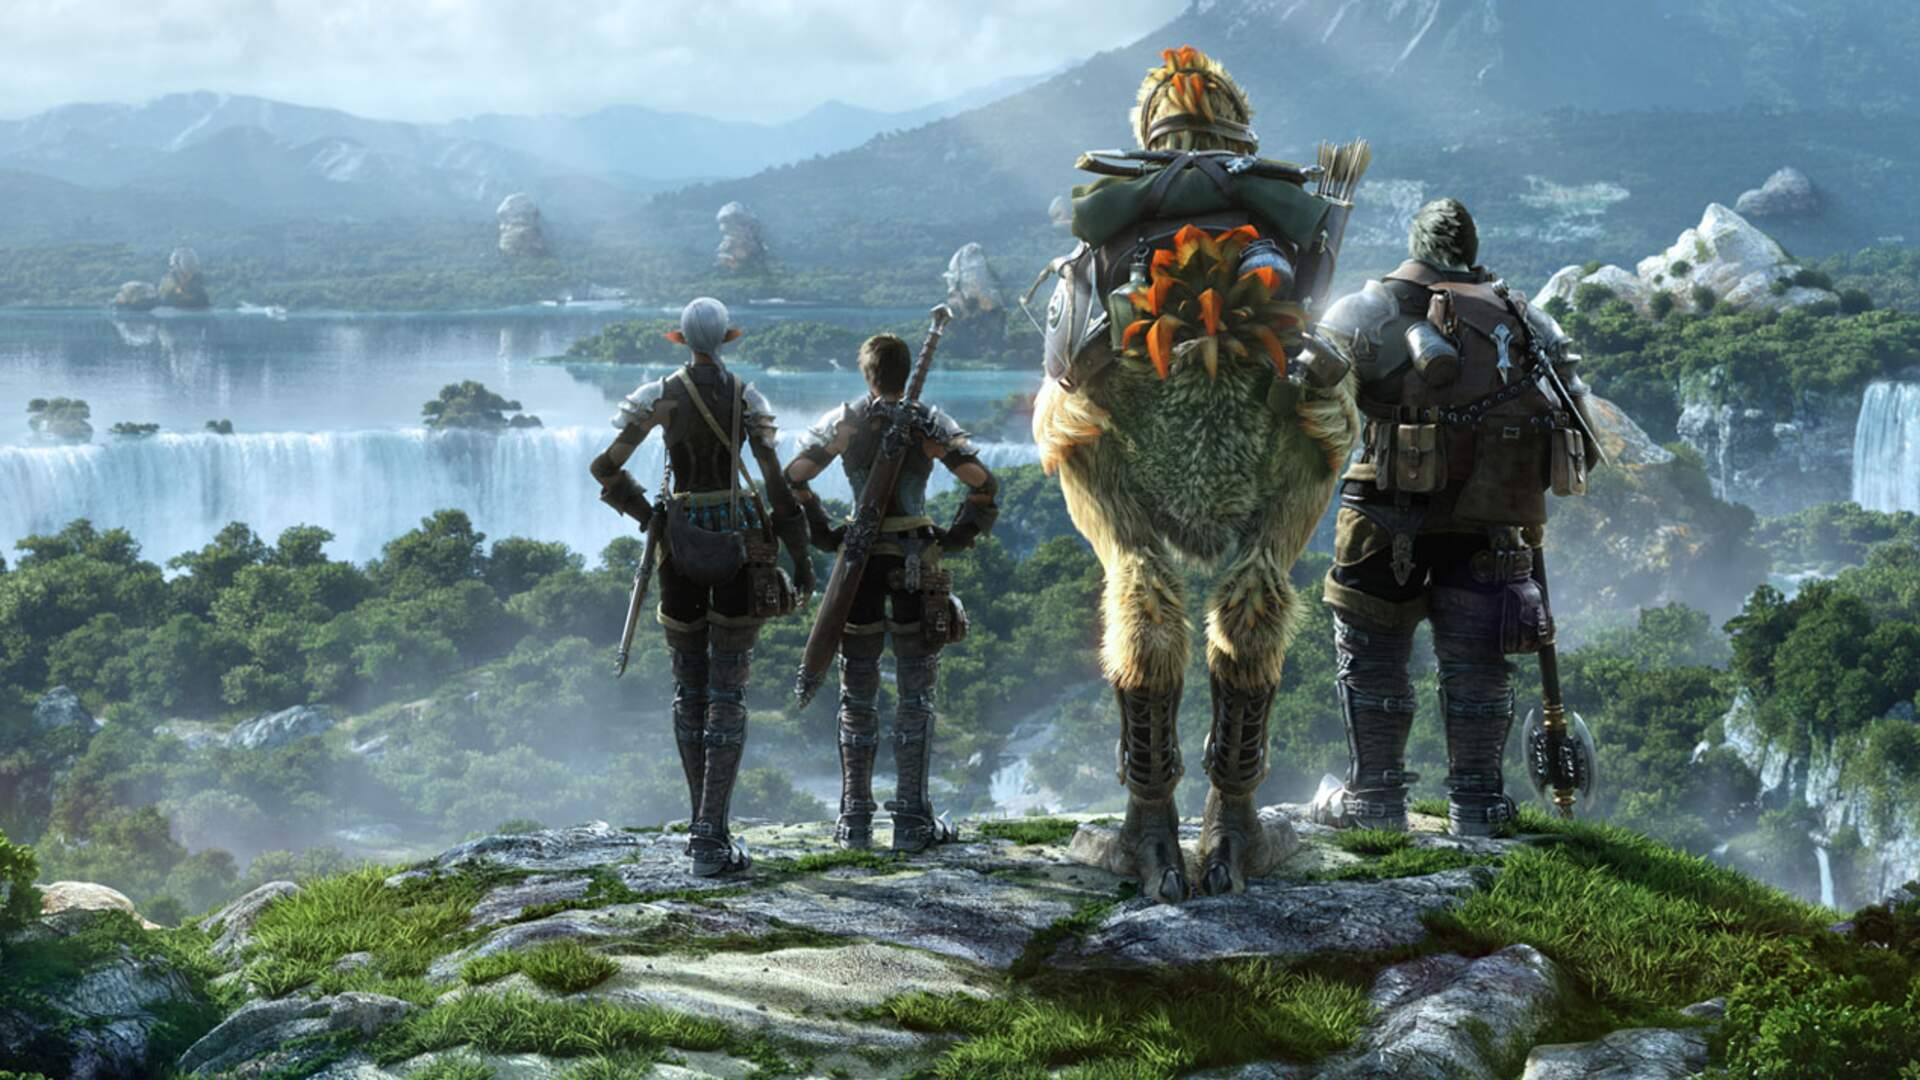 Final Fantasy XIV Doing Way Better than Square Enix Expected